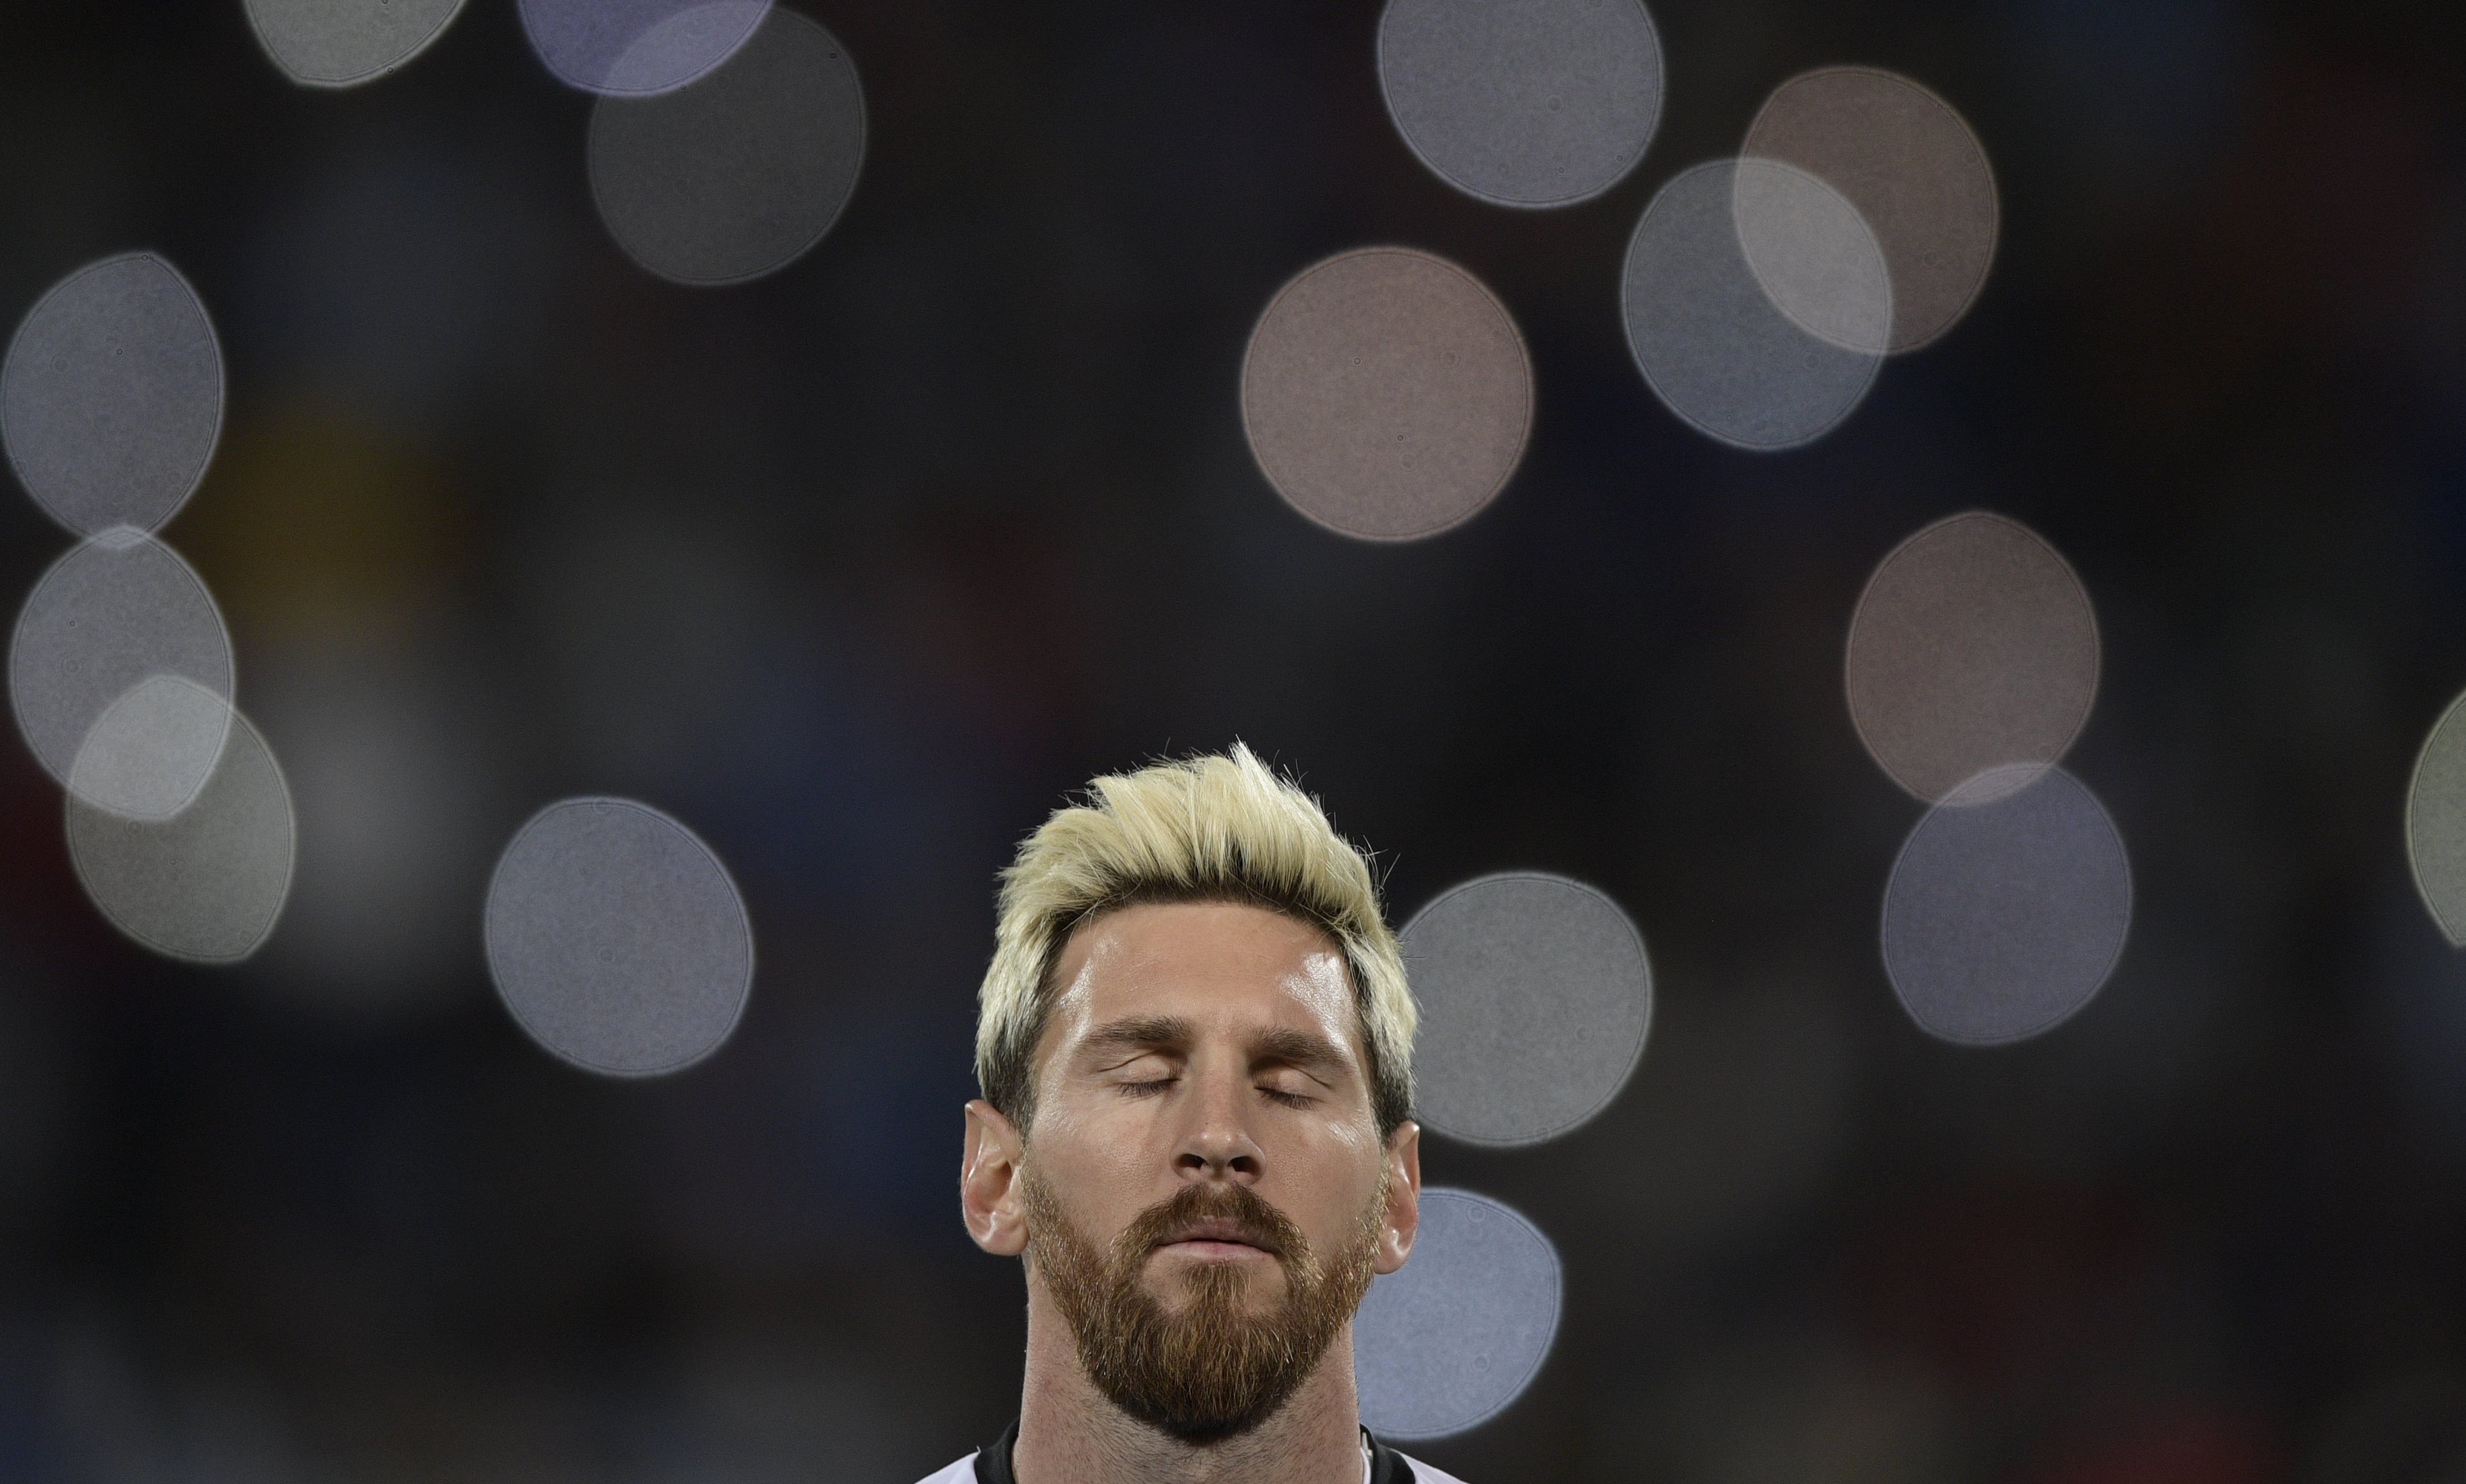 TOPSHOT - Argentina's Lionel Messi is seen before the start of the Russia 2018 World Cup qualifier football match in Mendoza, Argentina, on September 1, 2016. / AFP / JUAN MABROMATA (Photo credit should read JUAN MABROMATA/AFP/Getty Images)